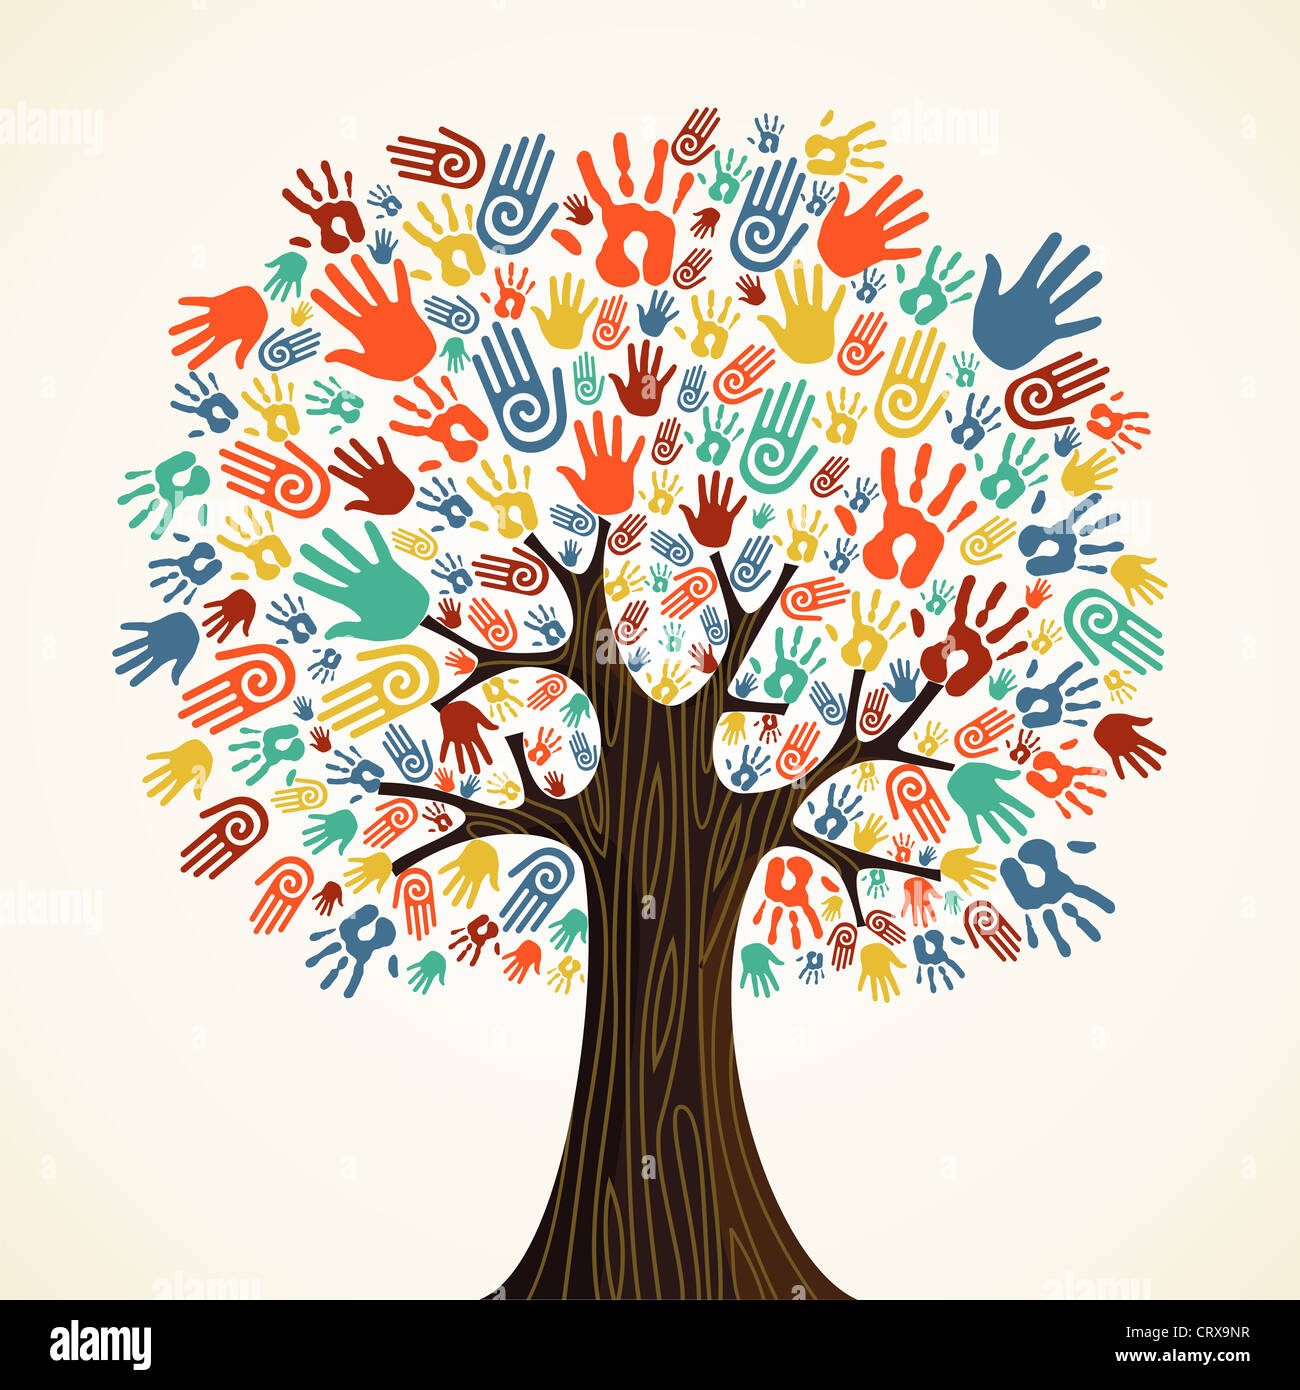 Isolated Diversity Tree Hands Illustration Vector File Layered For